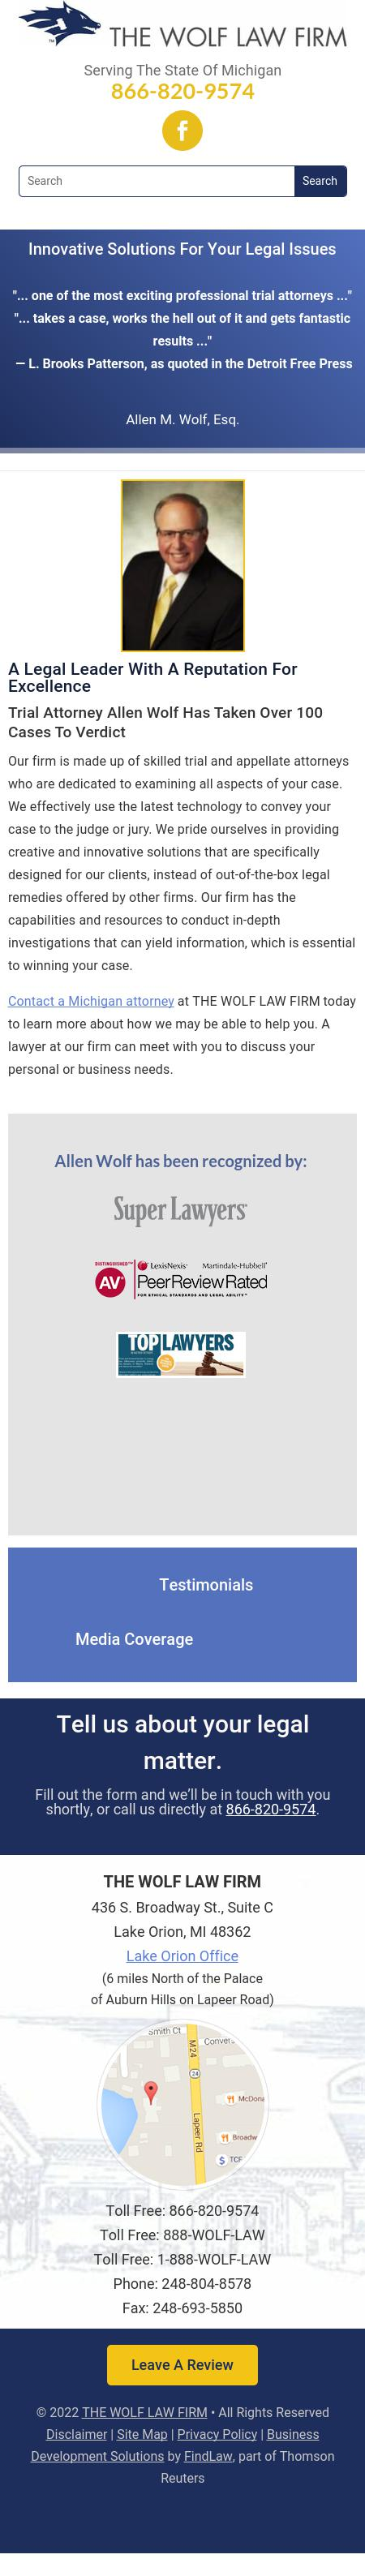 THE WOLF LAW FIRM - Lake Orion MI Lawyers